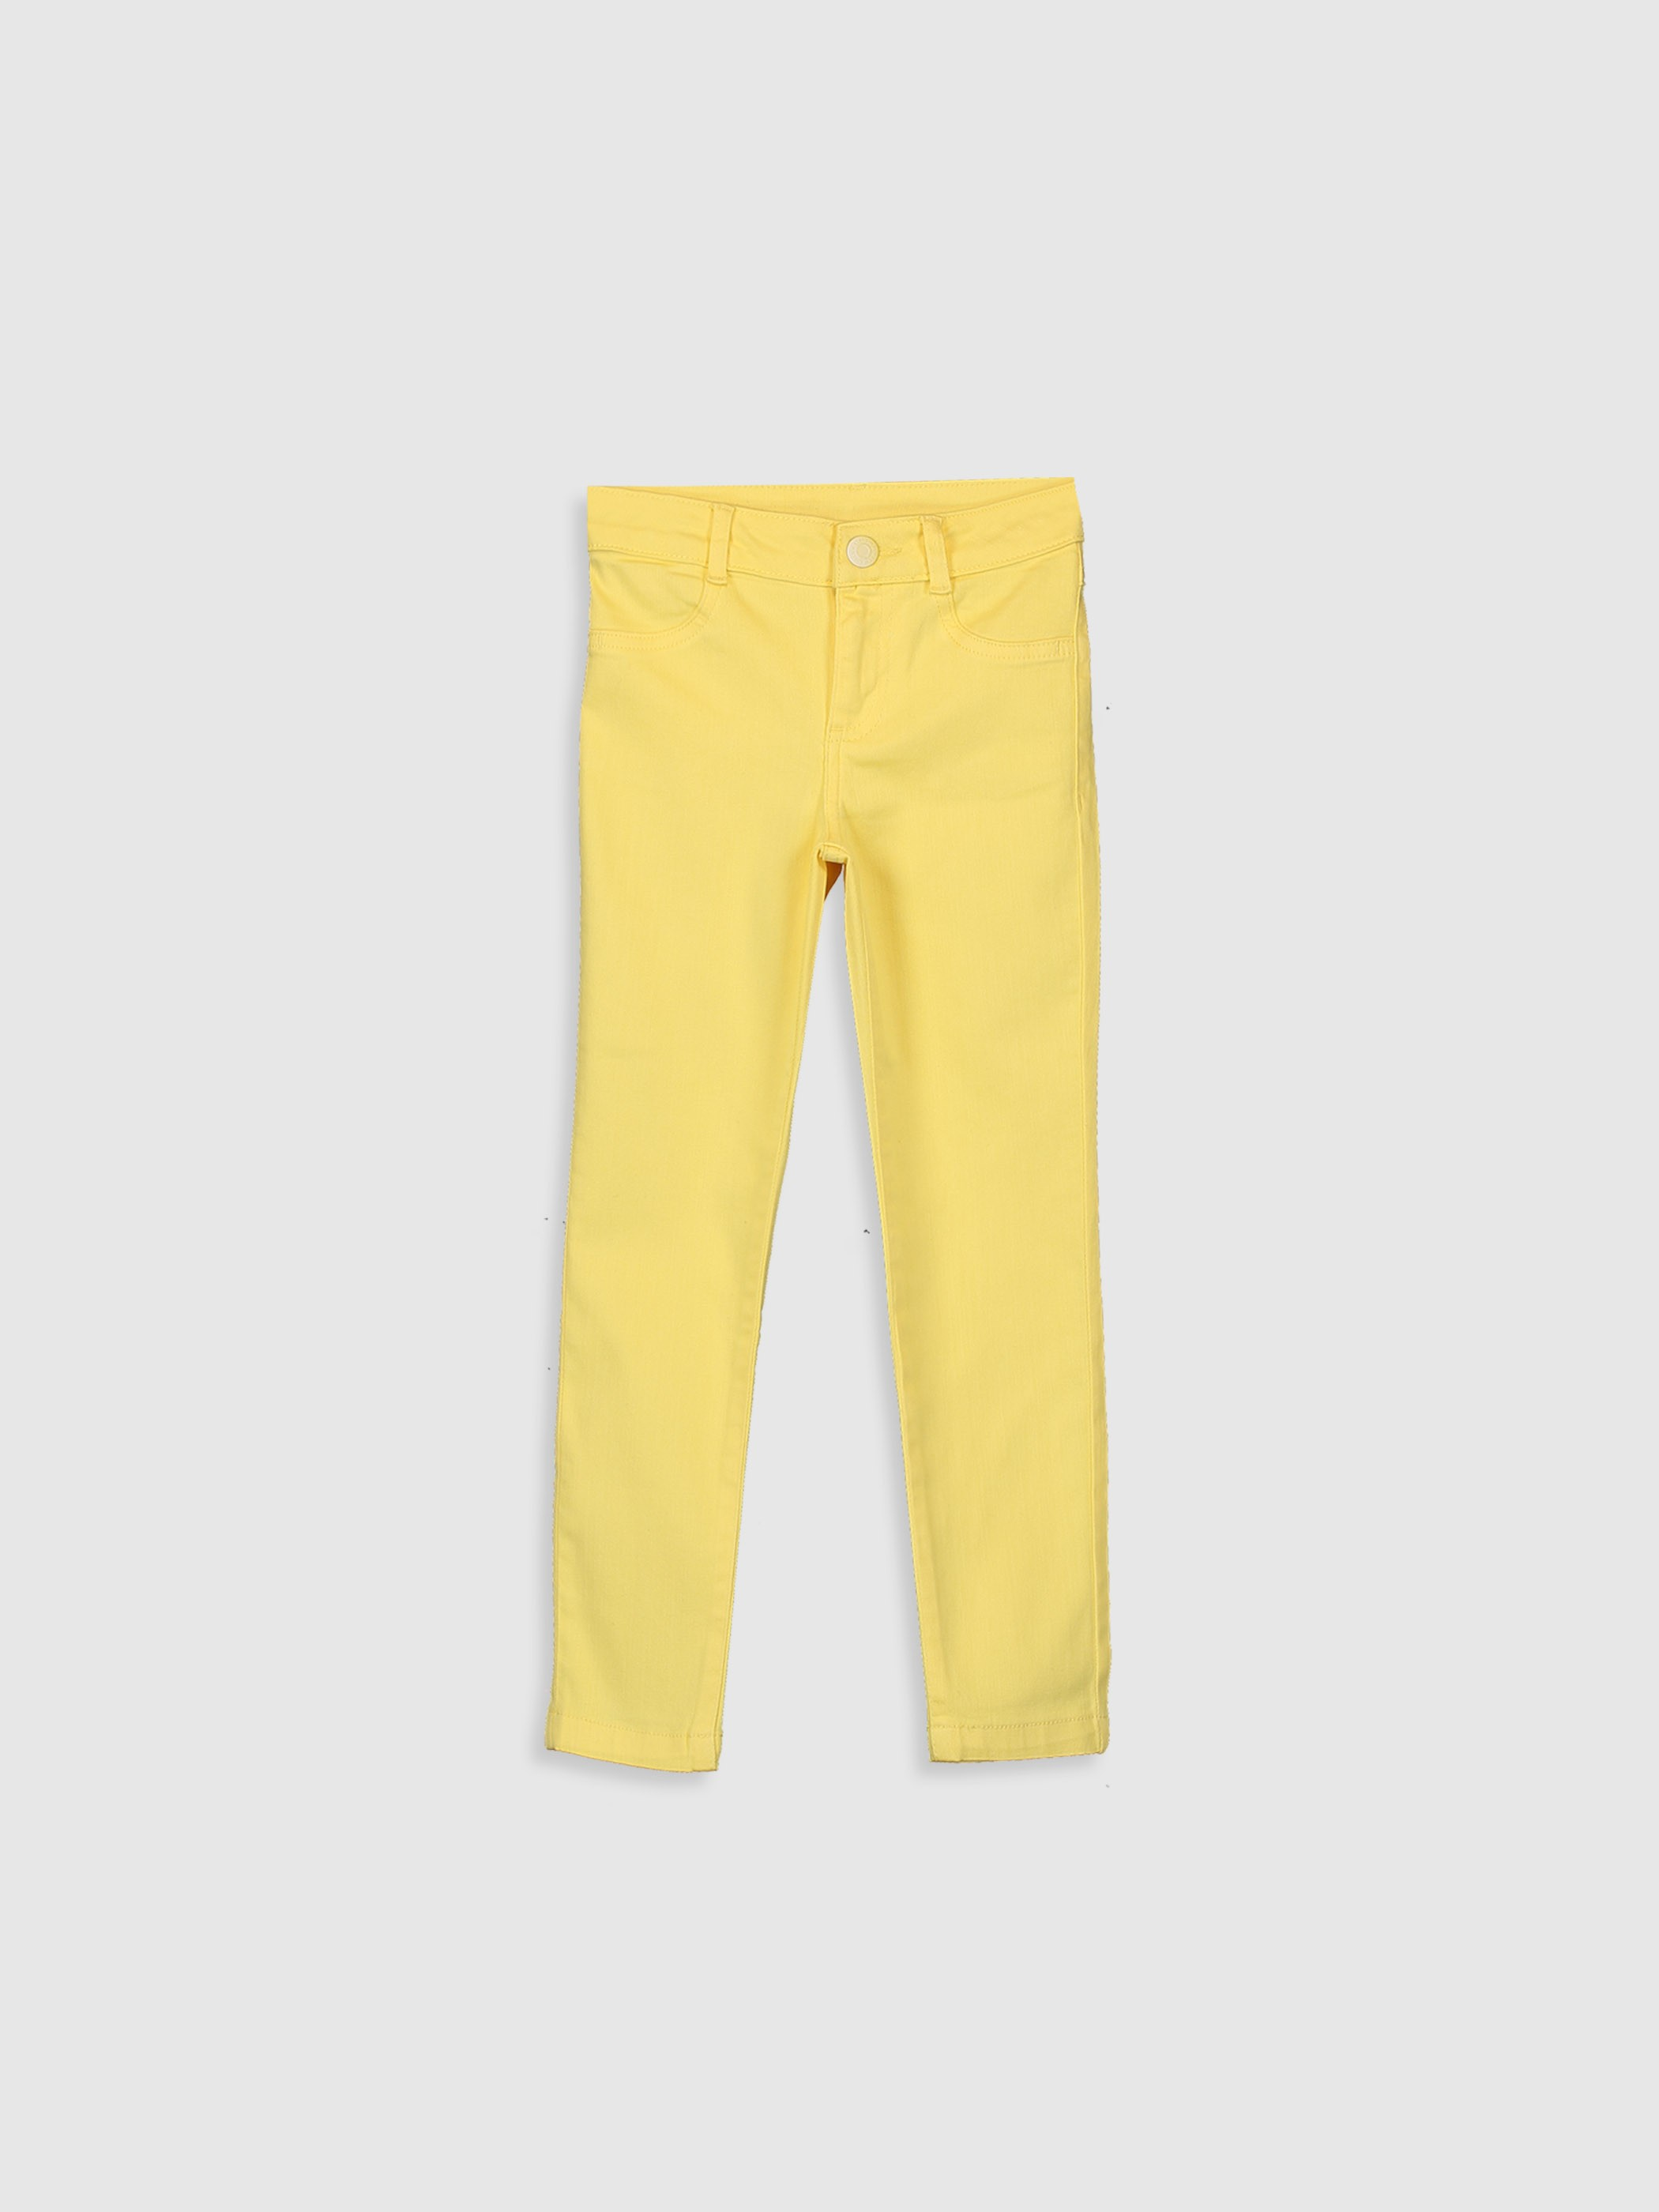 YELLOW - Trousers - 0S8334Z4